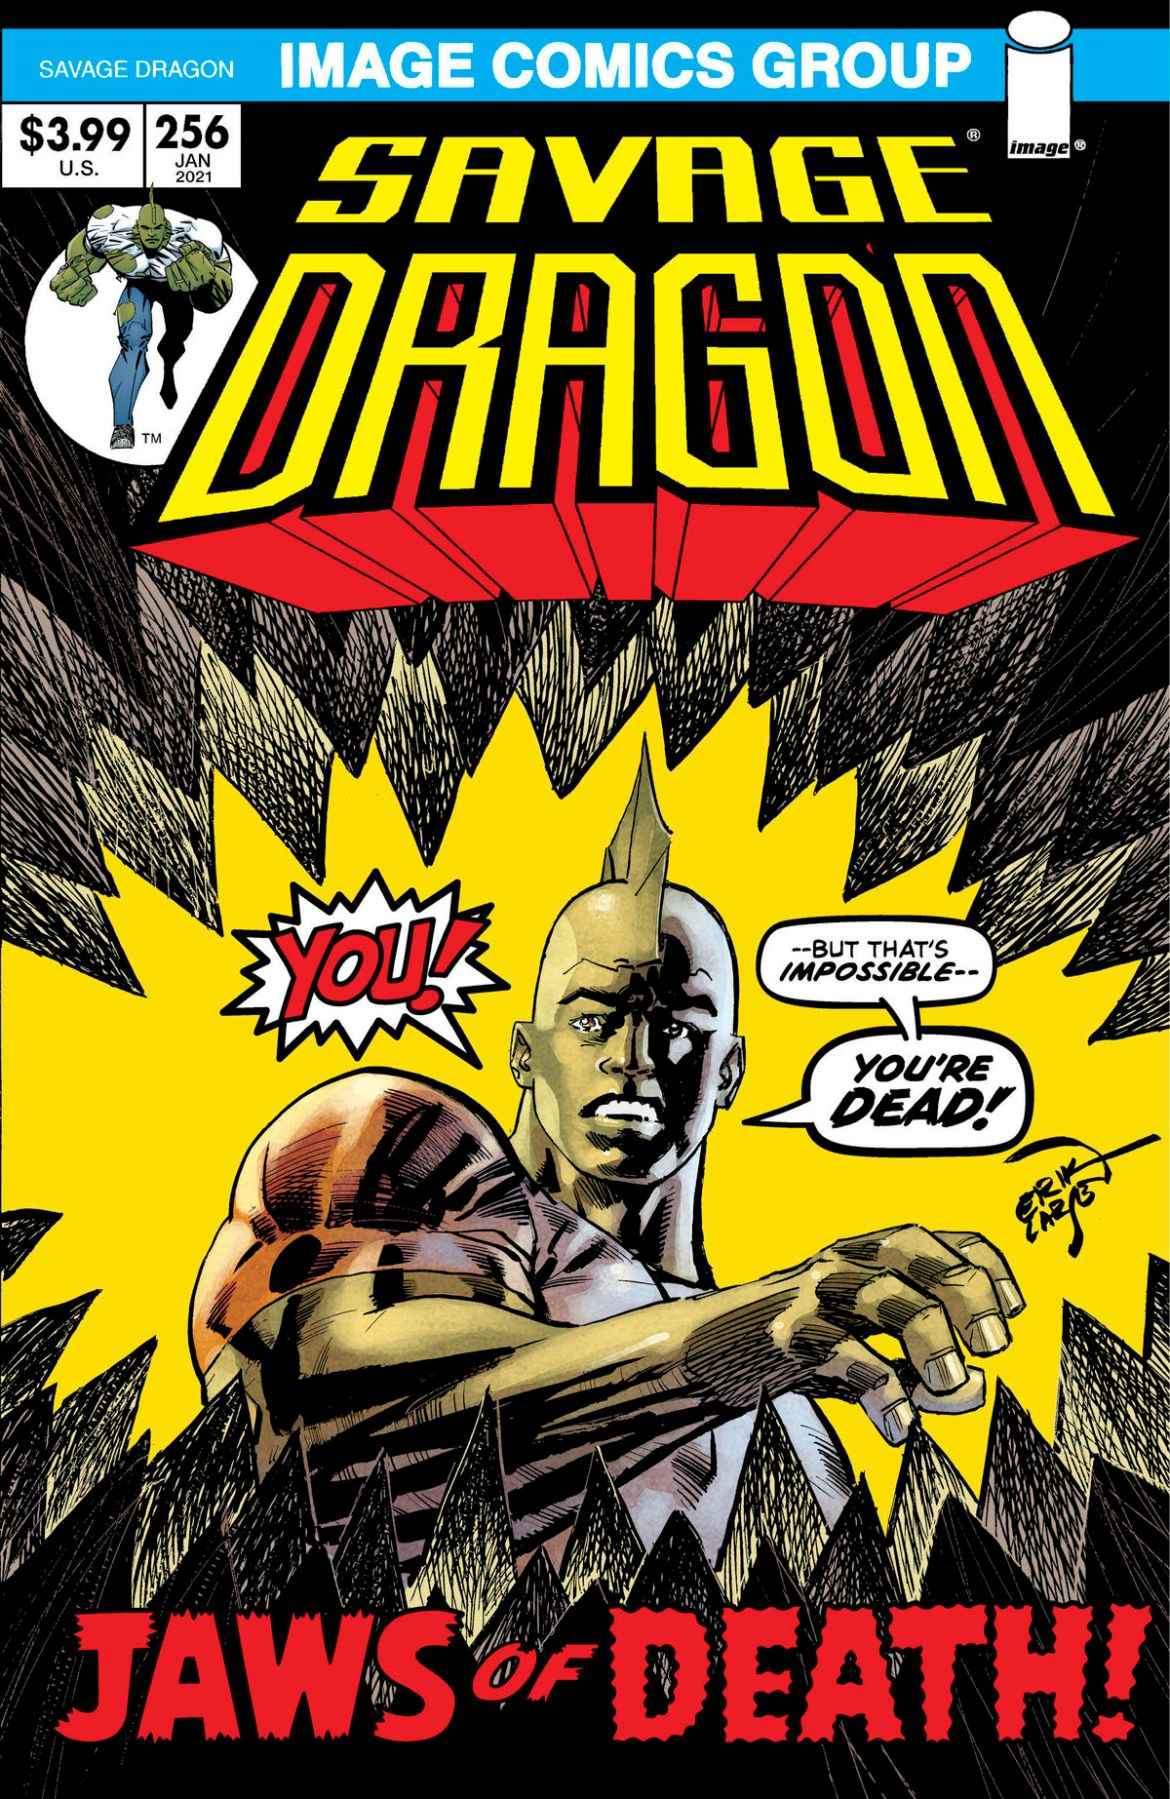 SD_256_70s_c6815a0147f8285e3b5042ebb3626151-1 SAVAGE DRAGON #254-256 to feature retro style variant covers